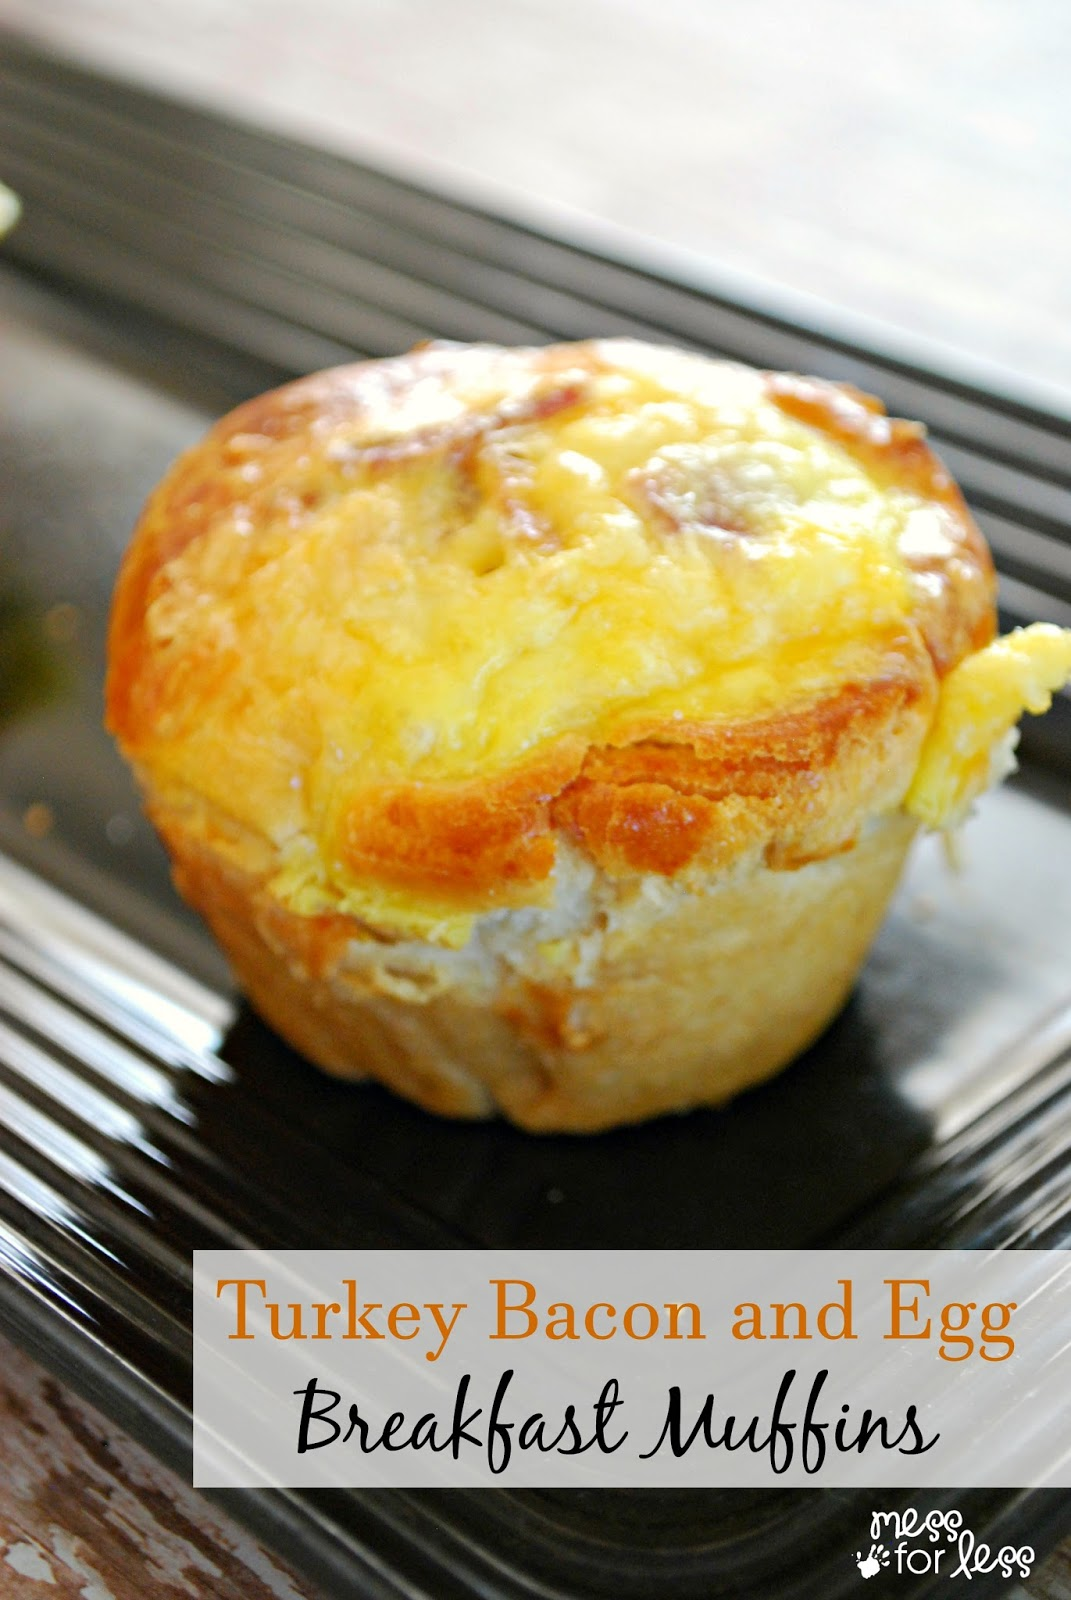 Turkey Bacon and Egg Breakfast Muffins made with Butterball Turkey Bacon - I love how these are portion controlled and they remind me of a classic all-American breakfast. #sponsored